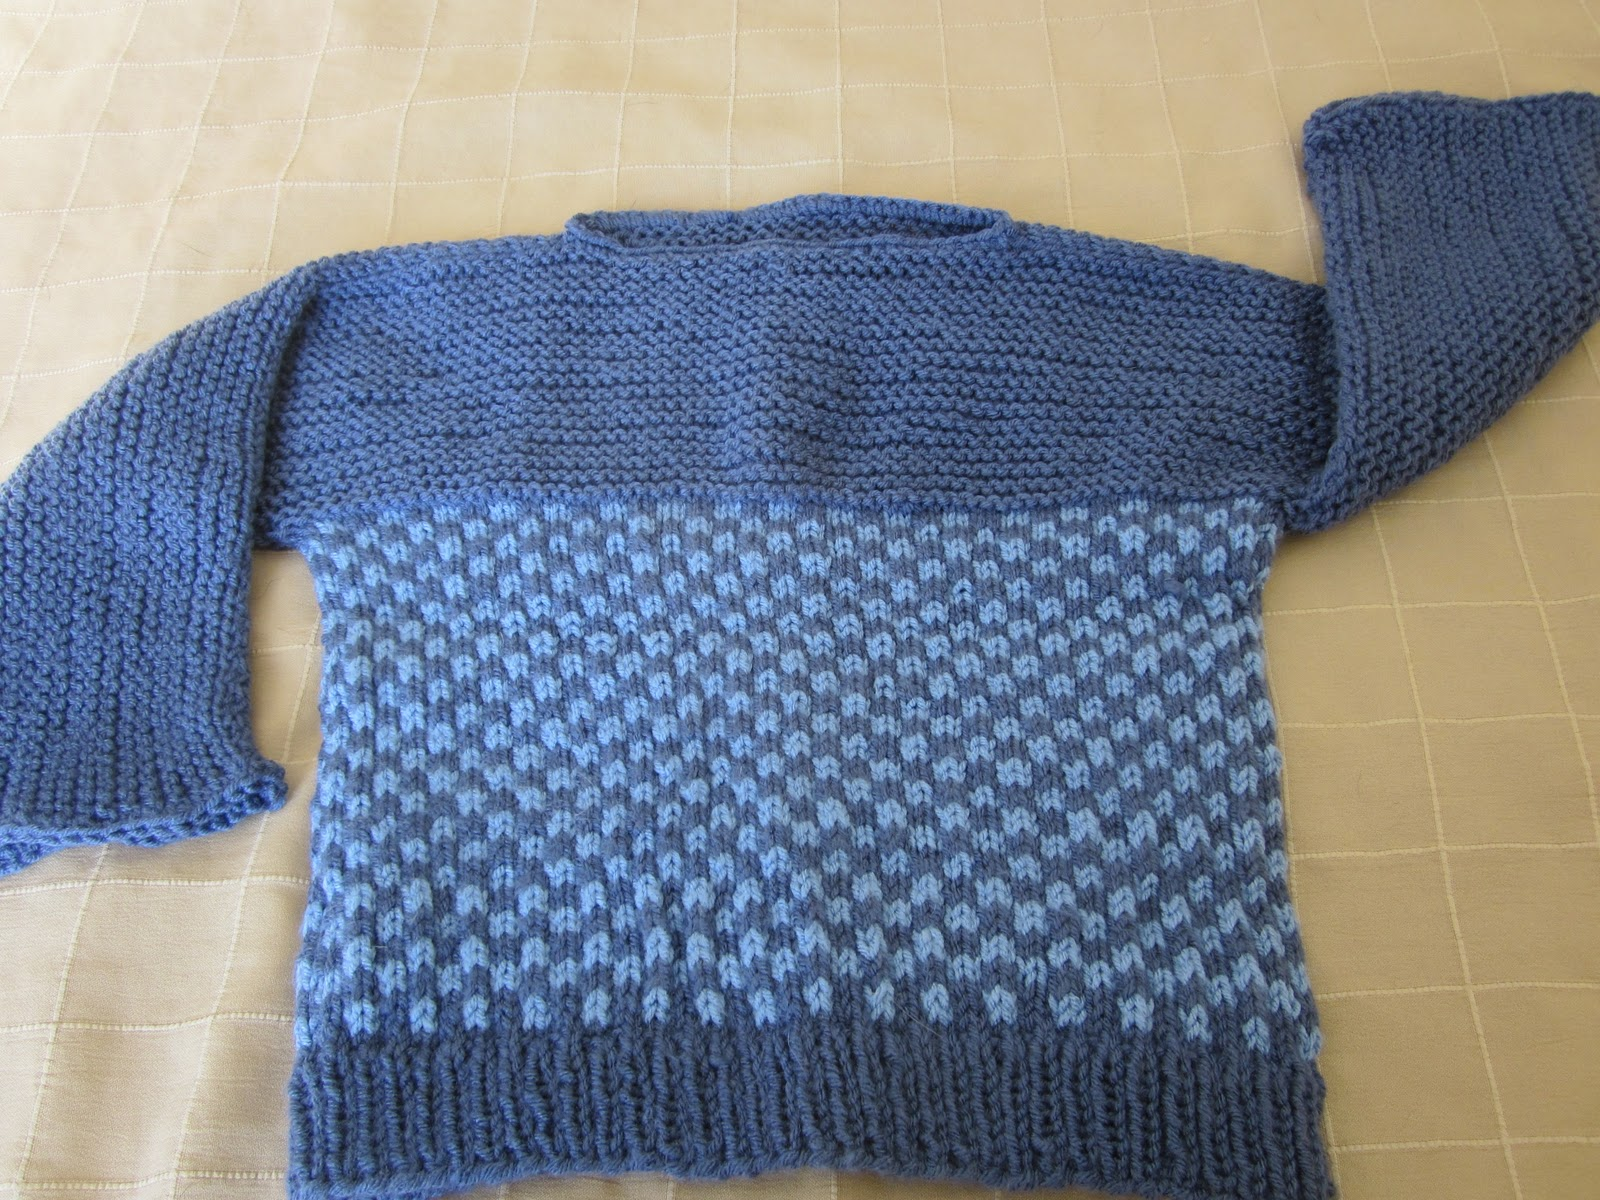 fd2ac3a8f Hand Knitted Sweaters Designs For Kids